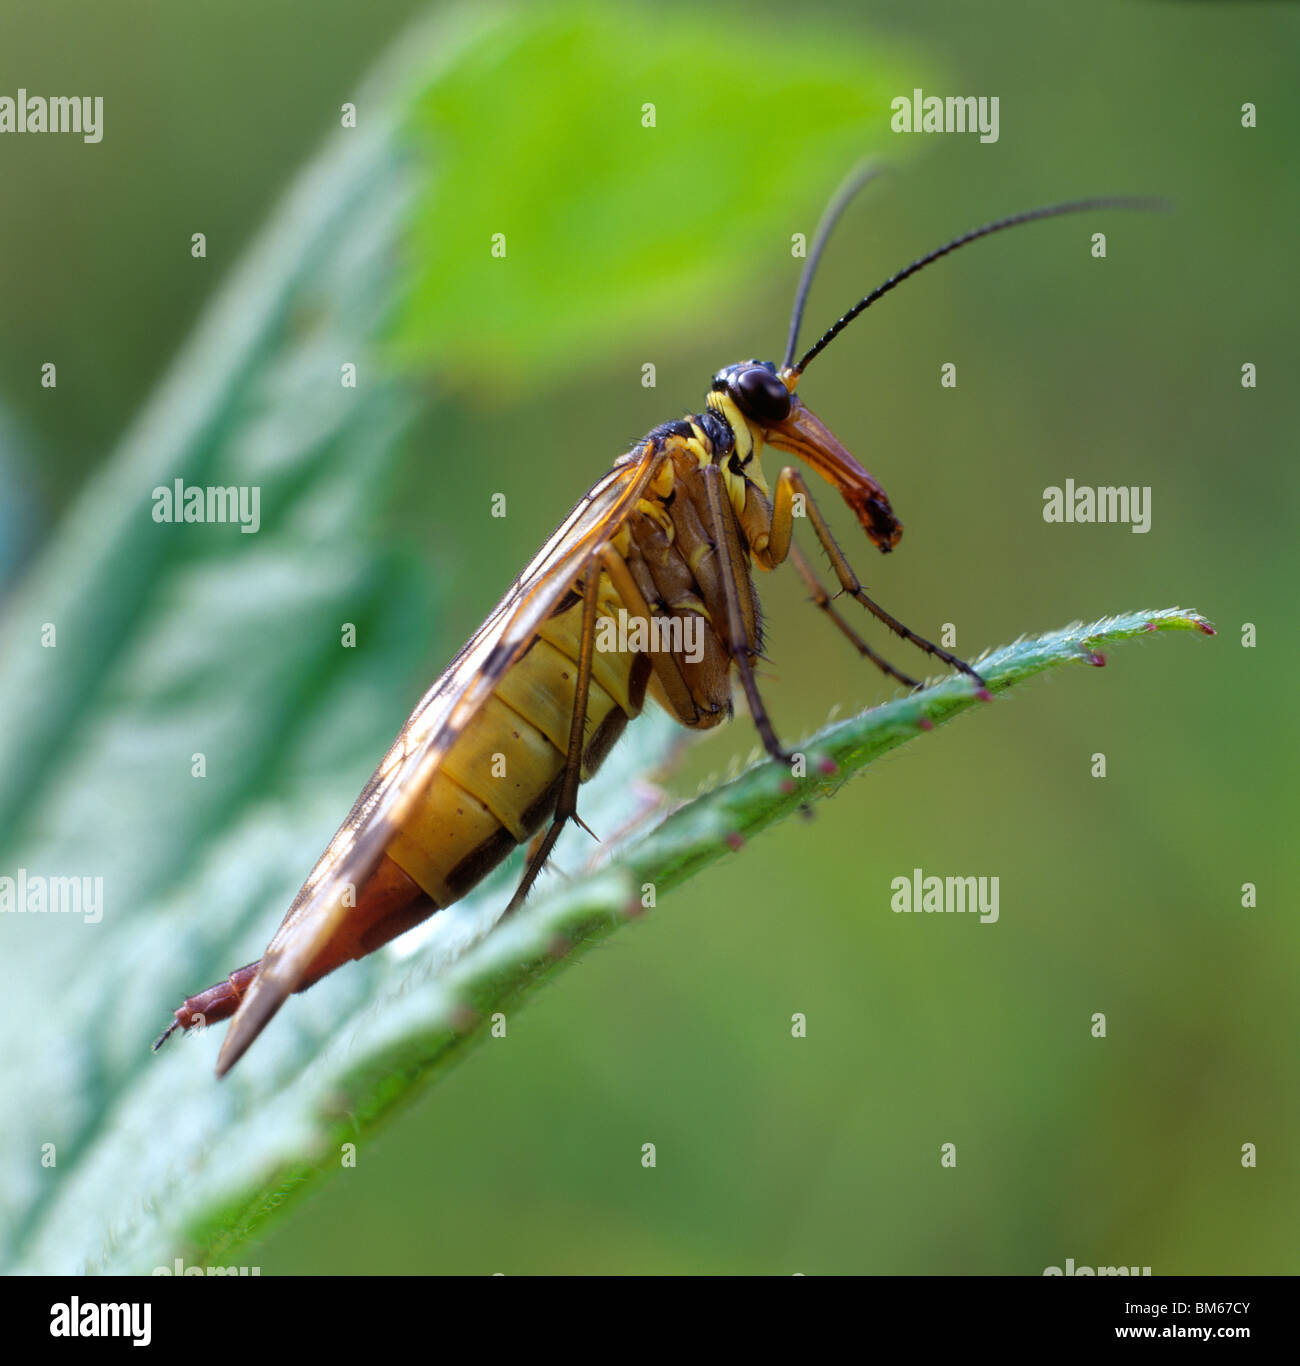 Common Scorpionfly (Panorpa communis), adult on a leaf. - Stock Image